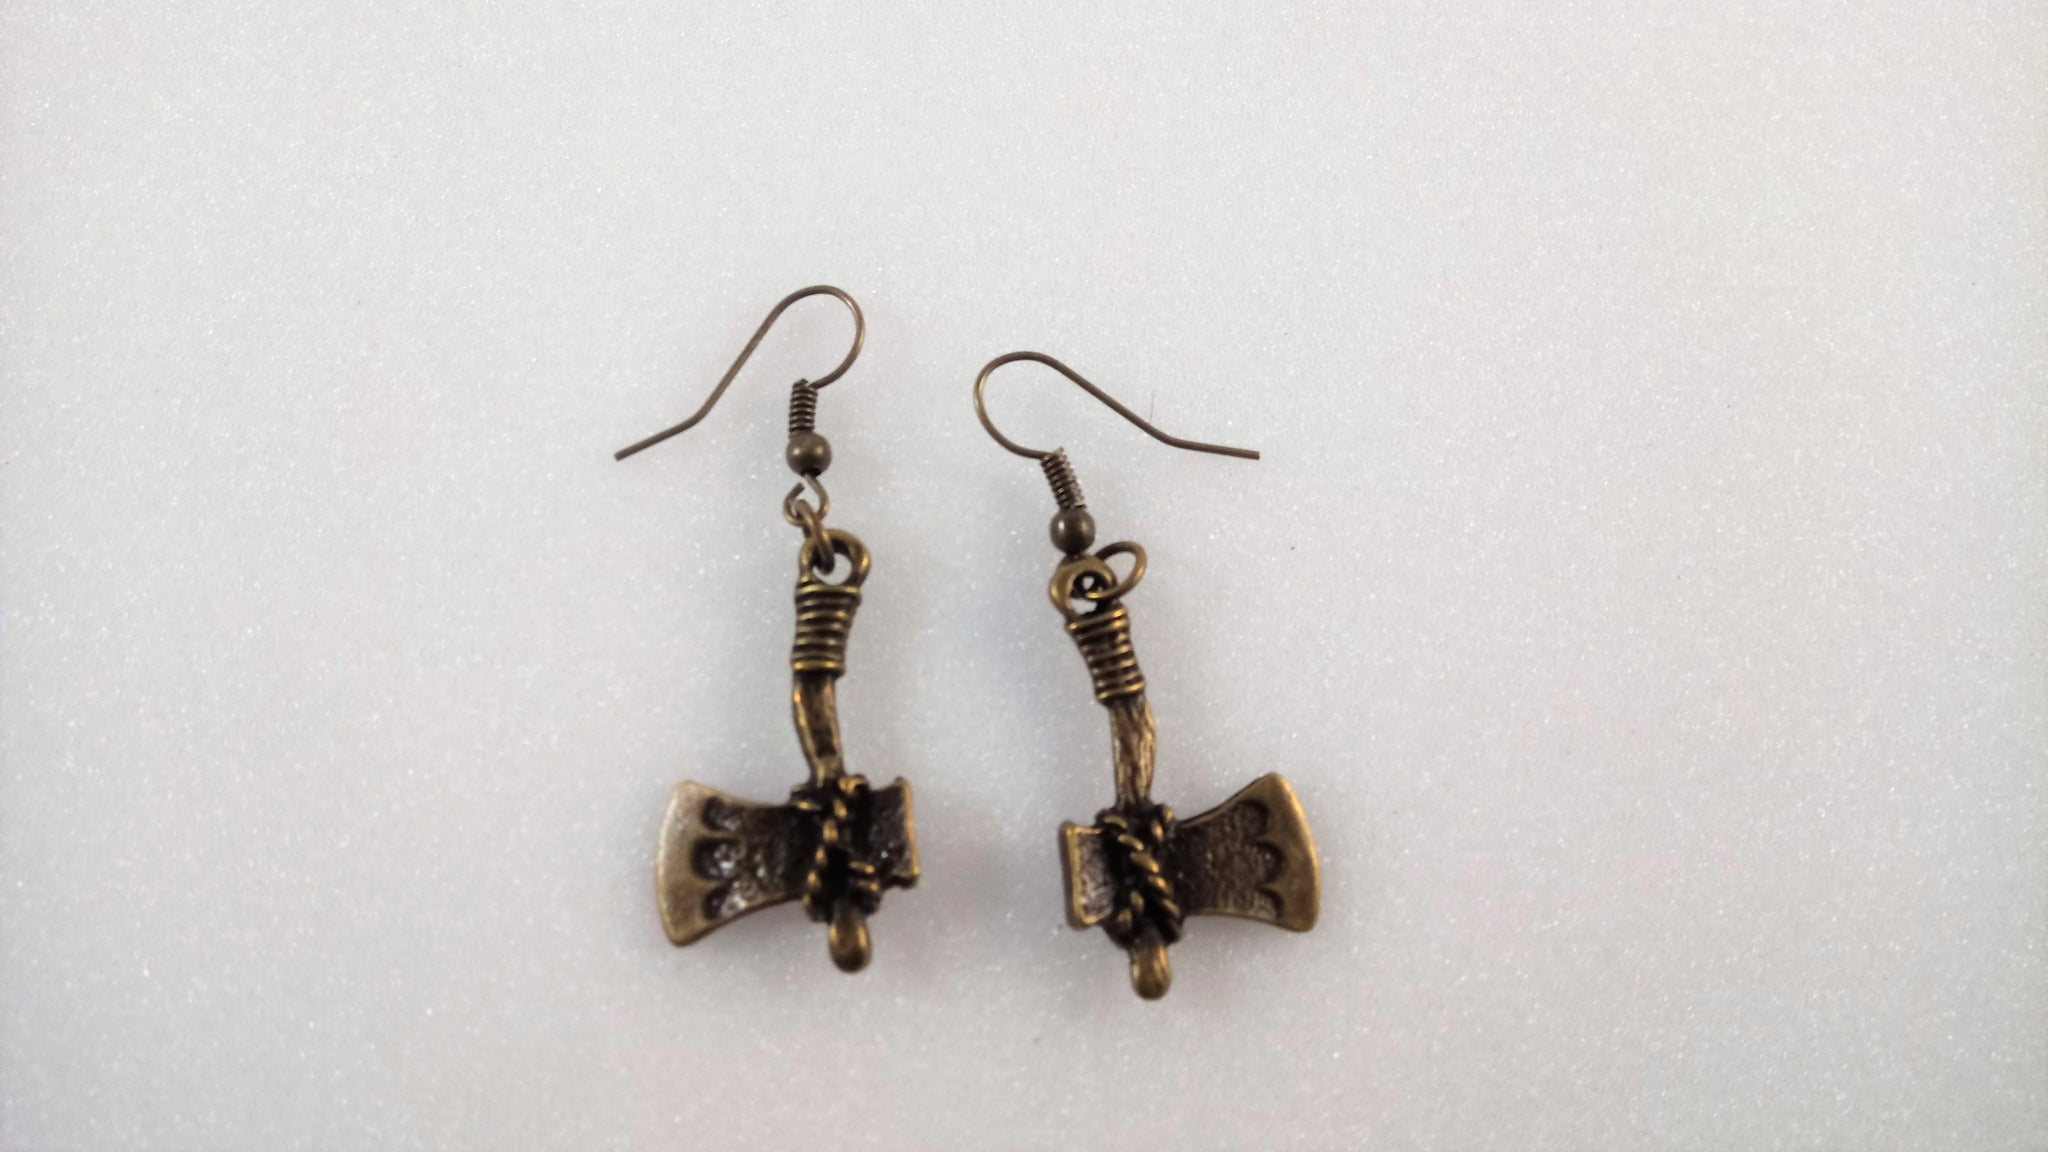 Axe Earrings